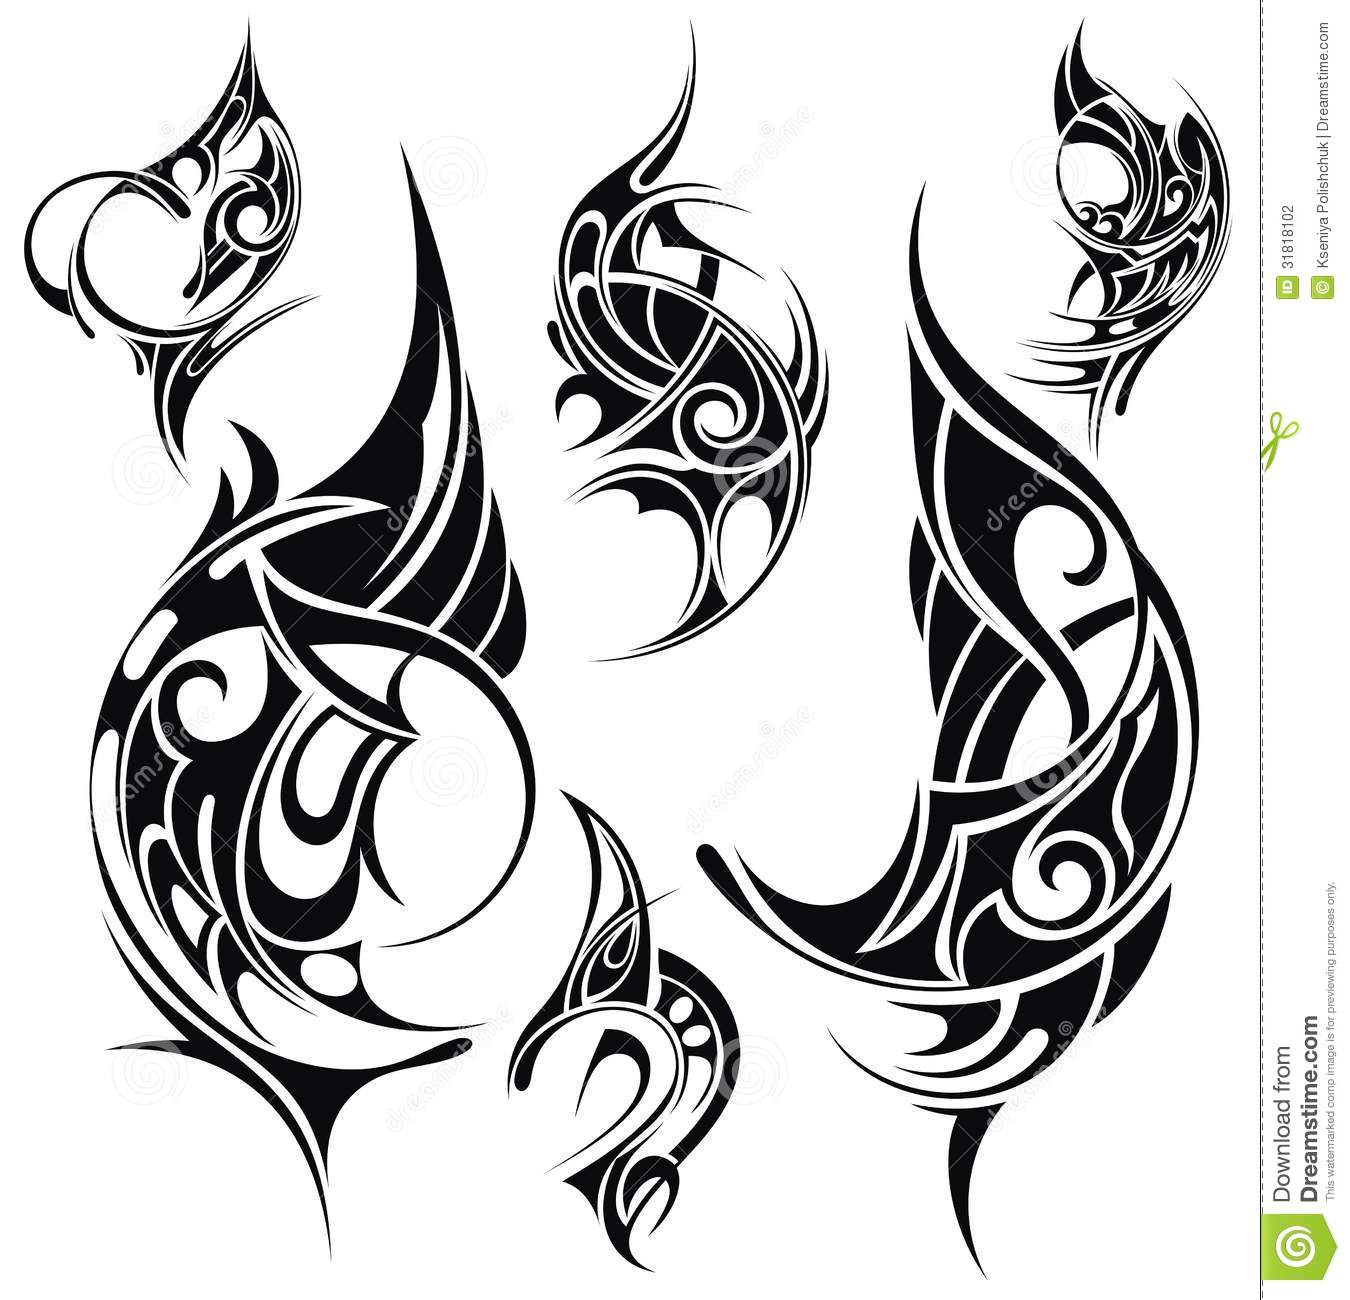 Tattoo Design Elements Stock Vector Illustration Of Ideas And Designs